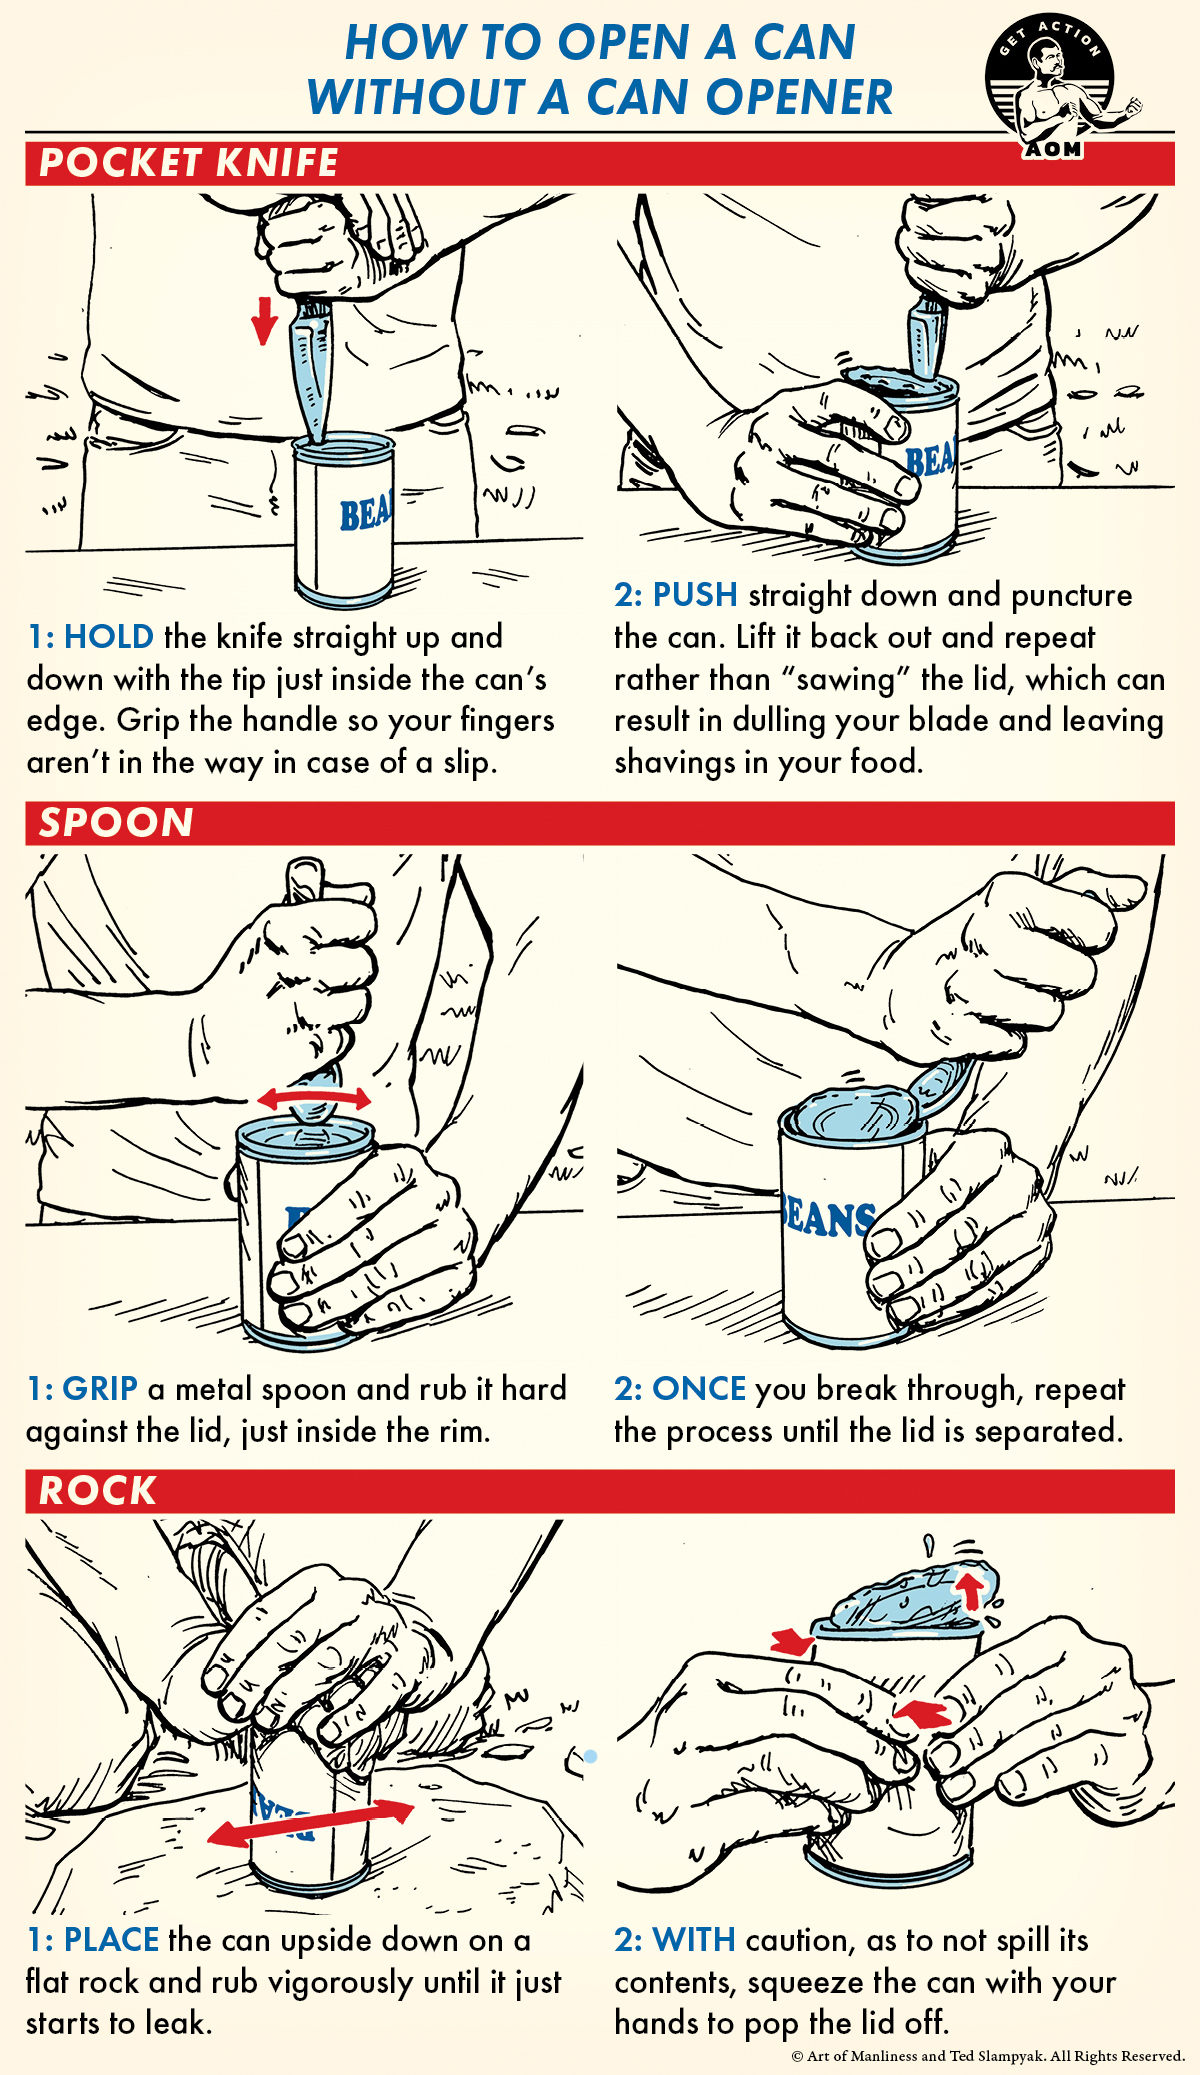 Open a can without an opener illustration.